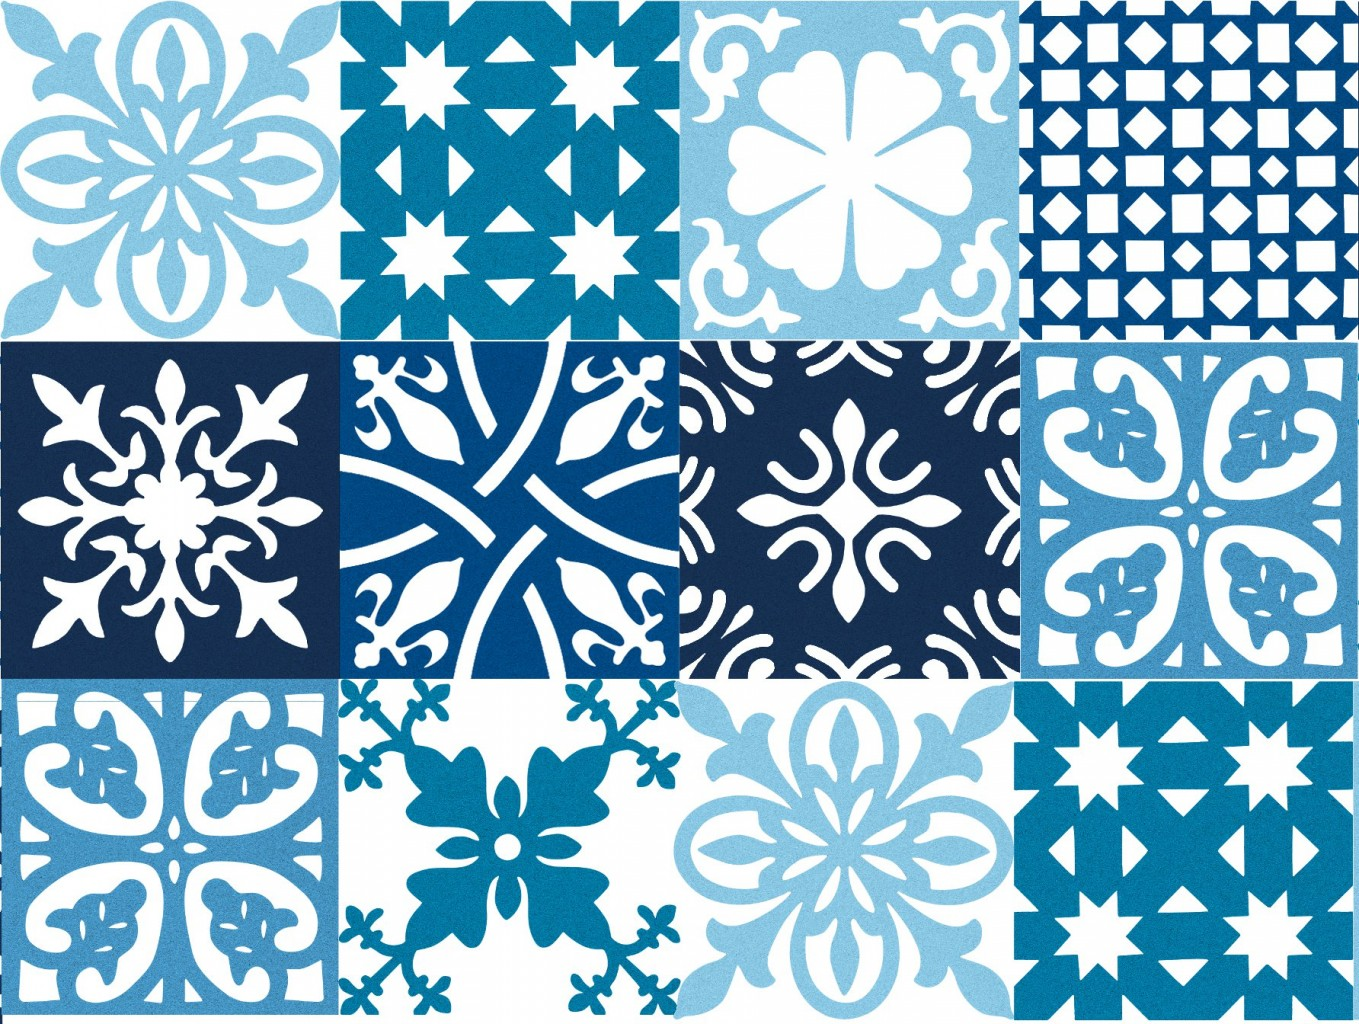 Patchwork Pattern Tiles - Sustainable Materials